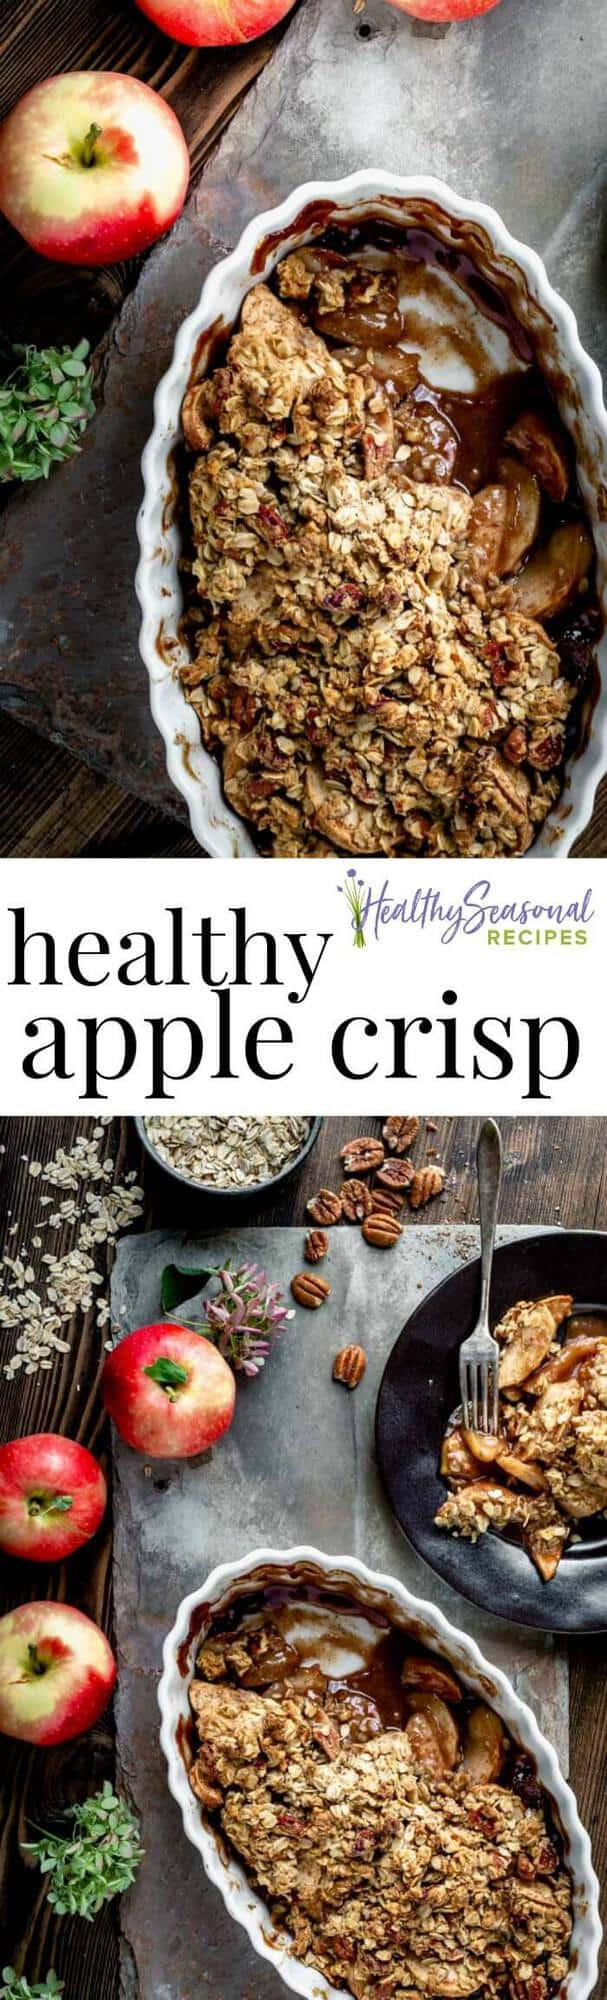 Healthy Maple Apple Crisp This maple sweetened apple crisp is the perfect dessert to bake this Fall. It\'s made with a variety of apples to amp up the juicy flavor and then topped with pecans and rolled oats to really take it to the next level! #apples #applecrisp #maple #dessert #healthy